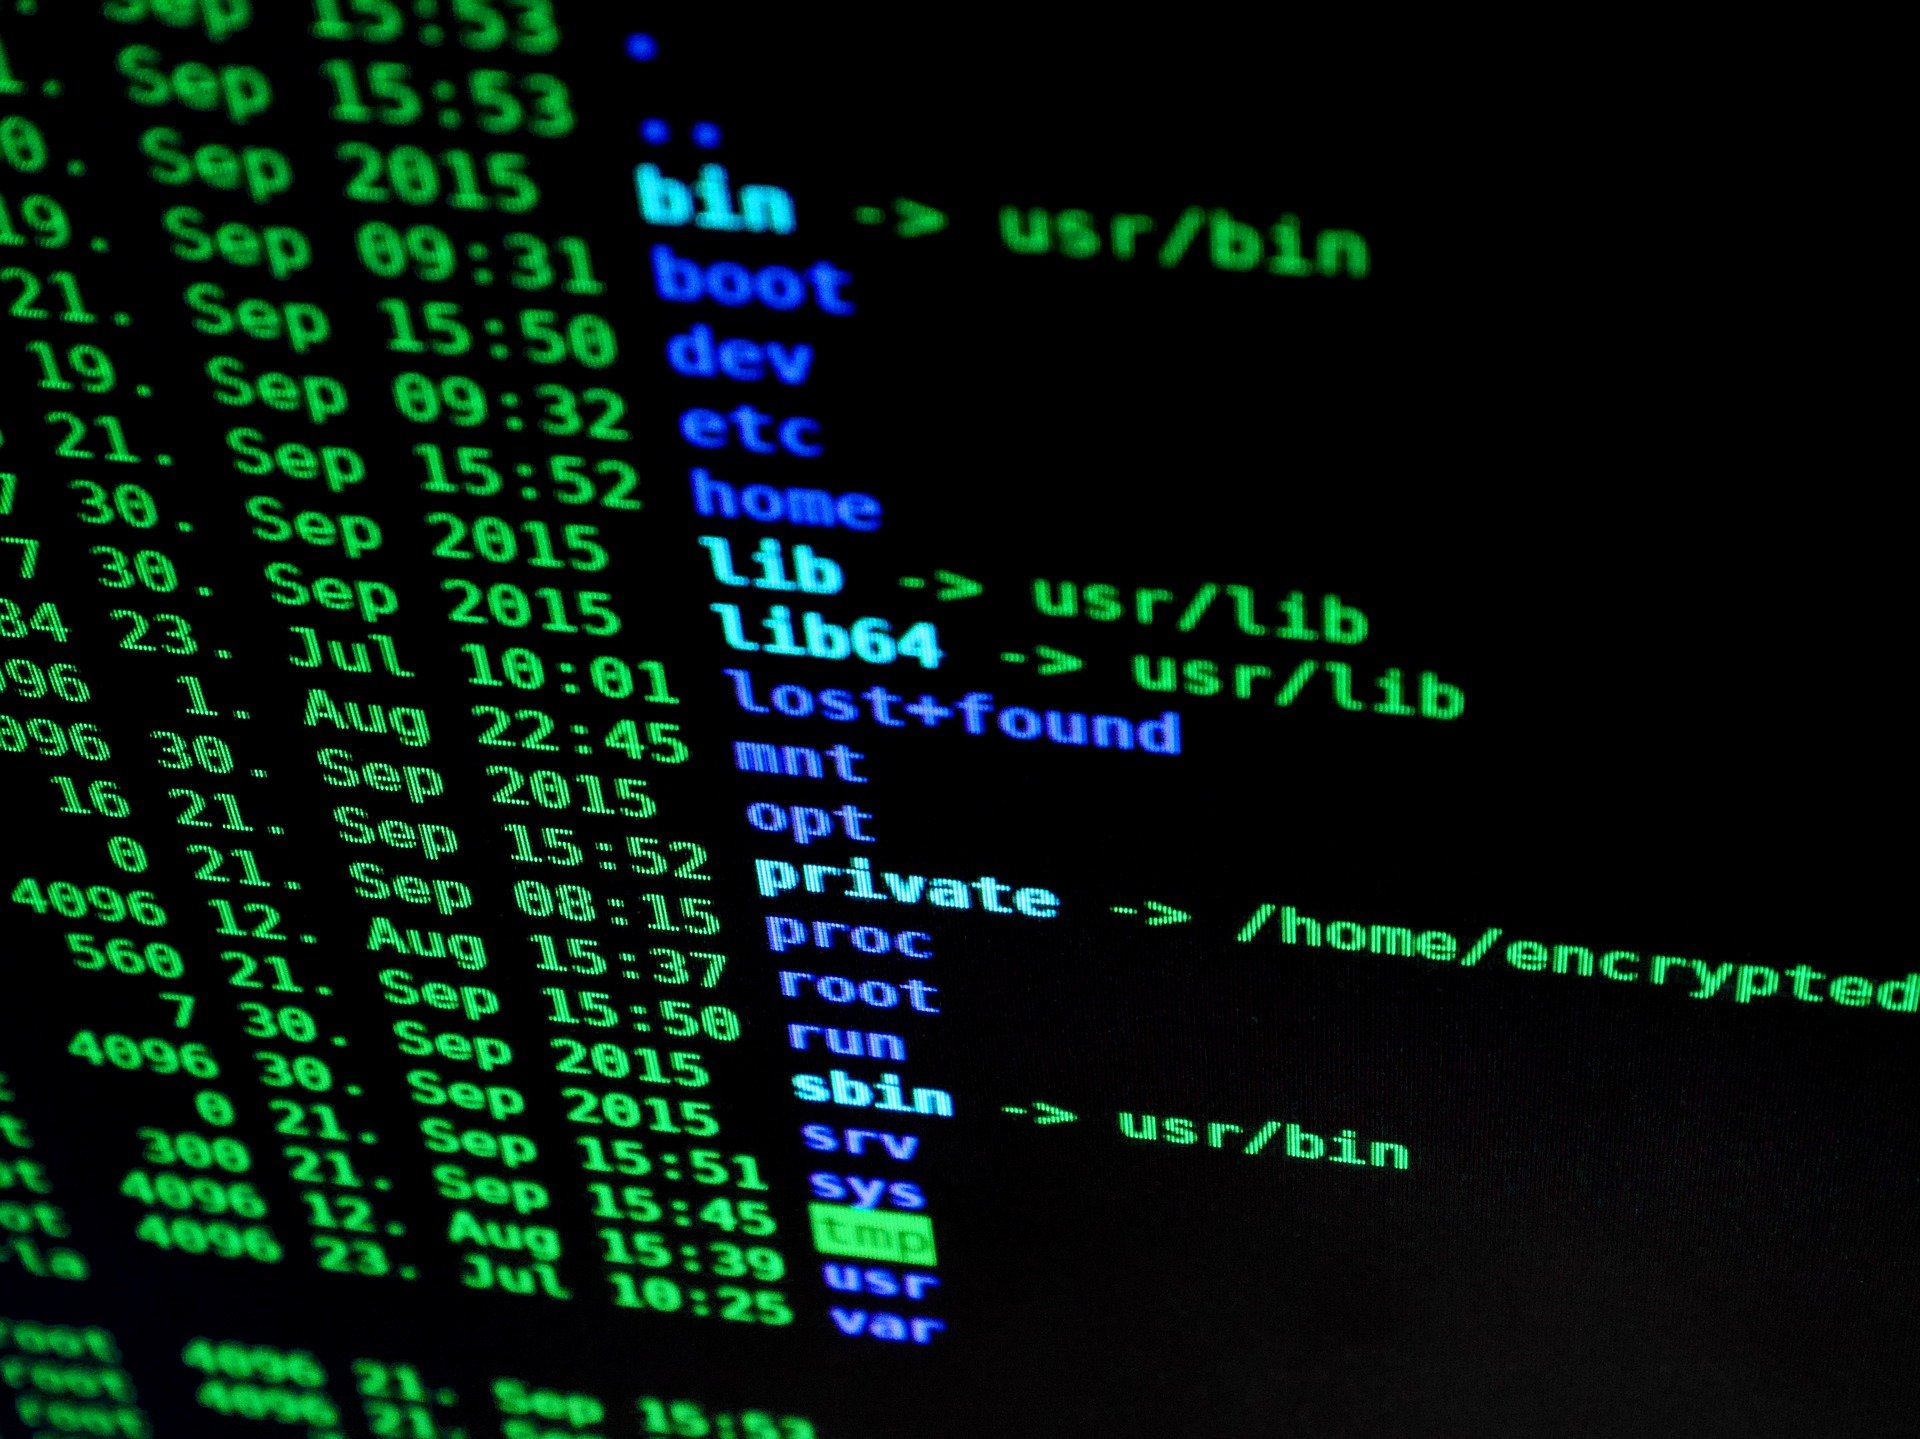 Preventing Cyber Security Attacks Lies in Strategic, Third-Party Investments